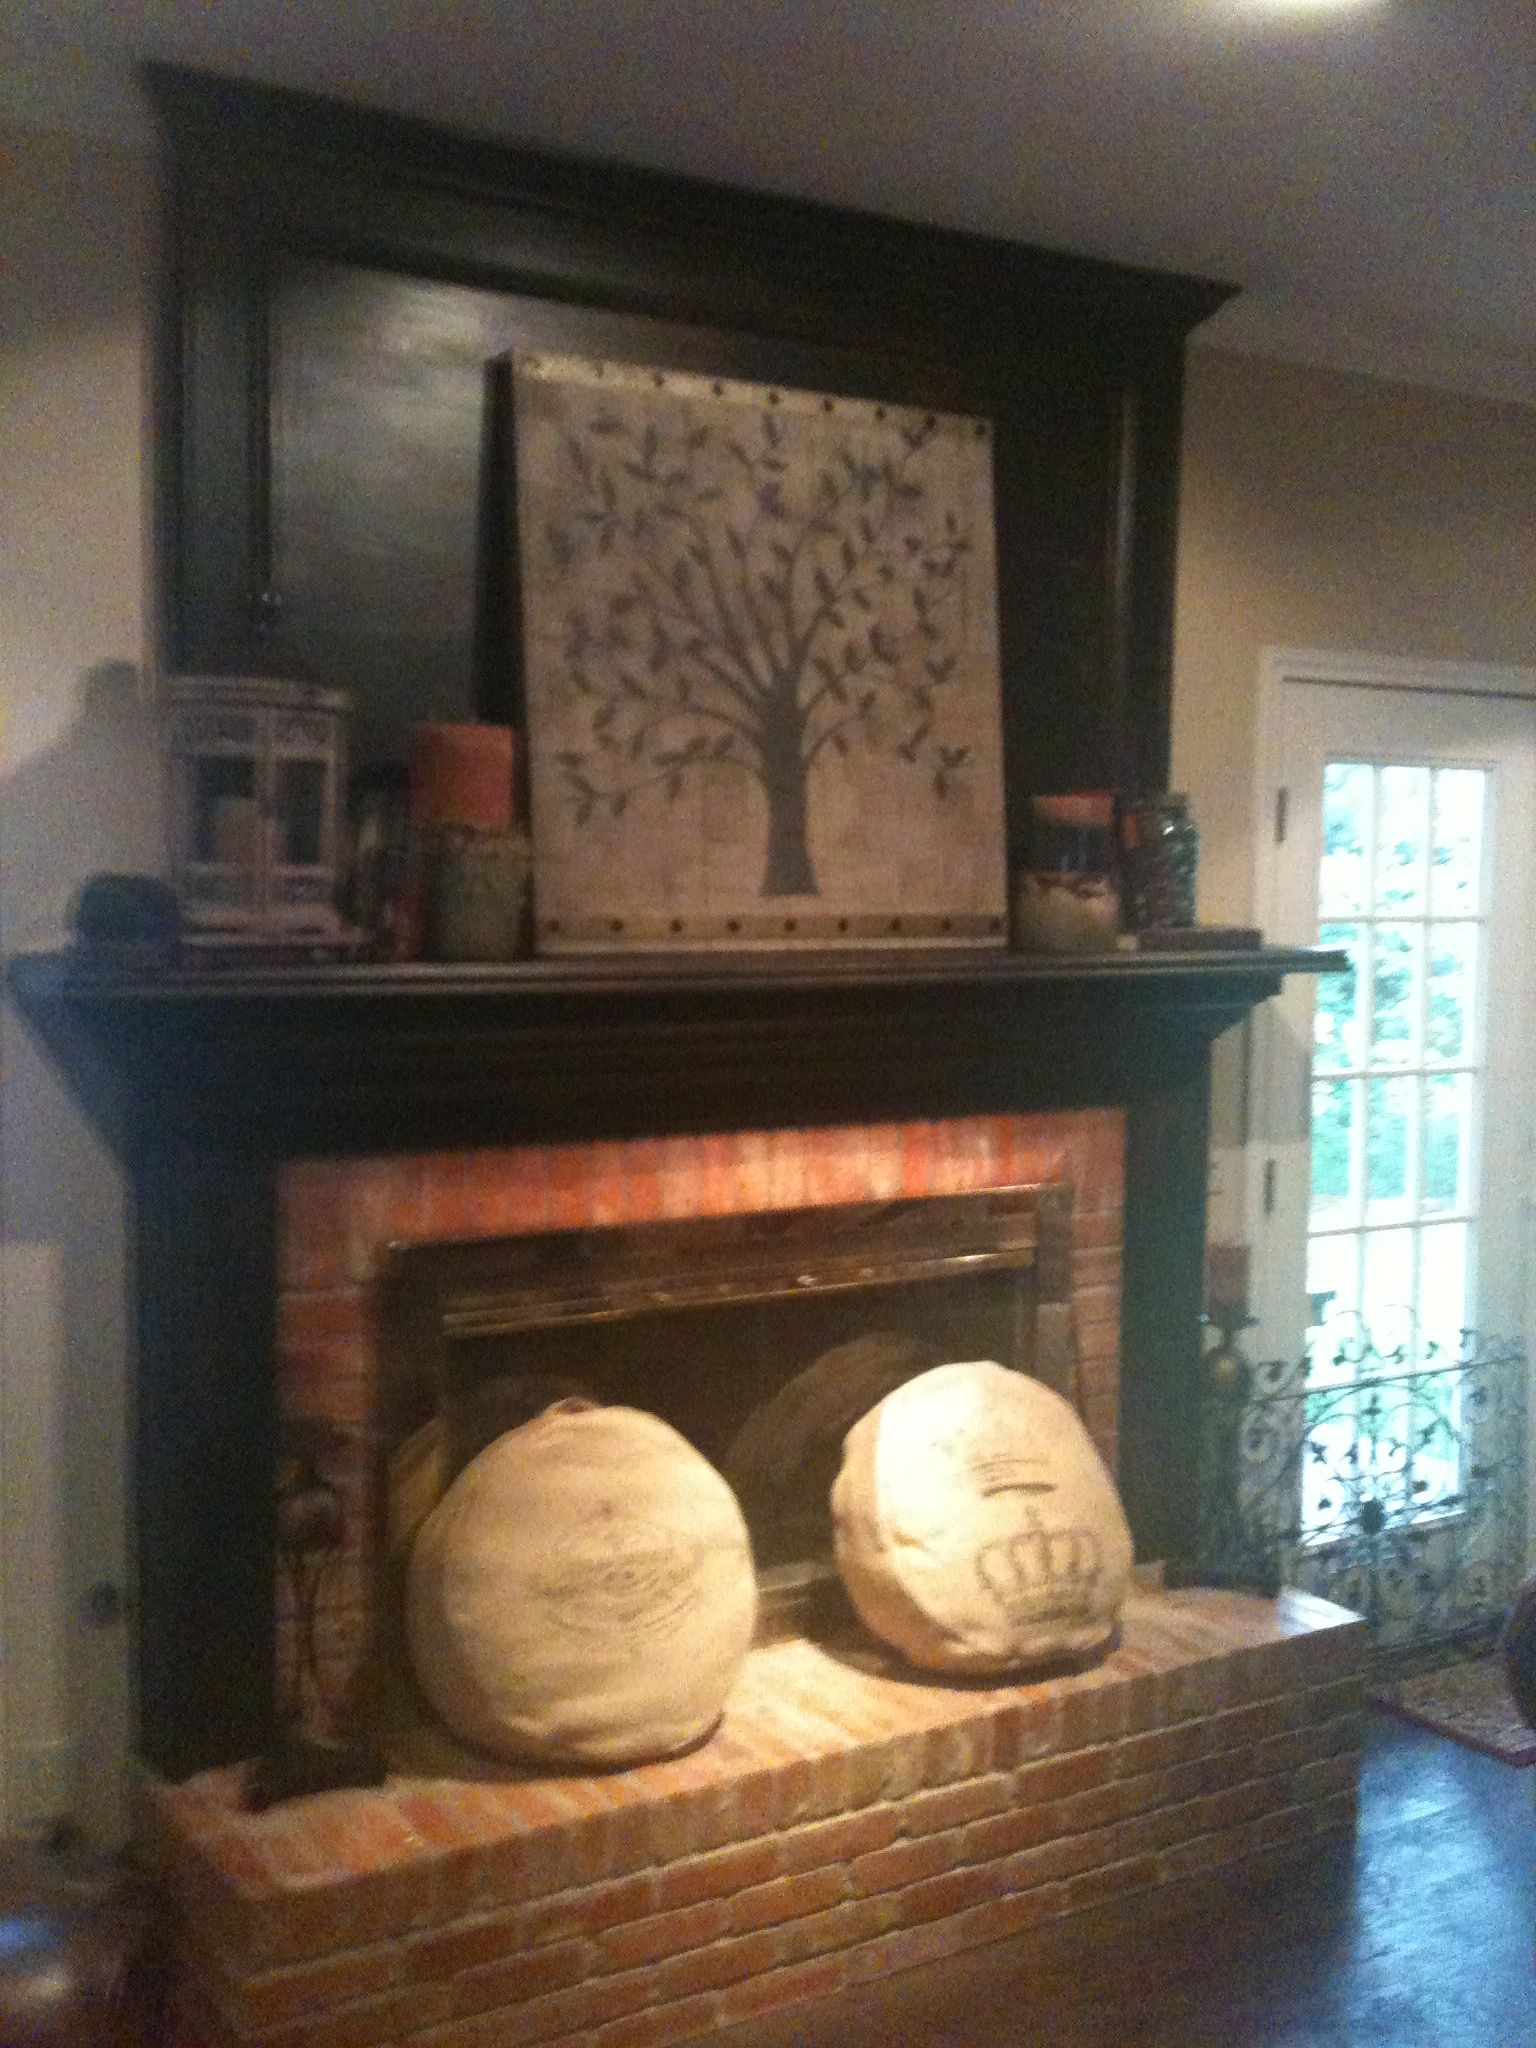 We Just Painted And Distressed Our White Fireplace Mantle And Surround For The Home